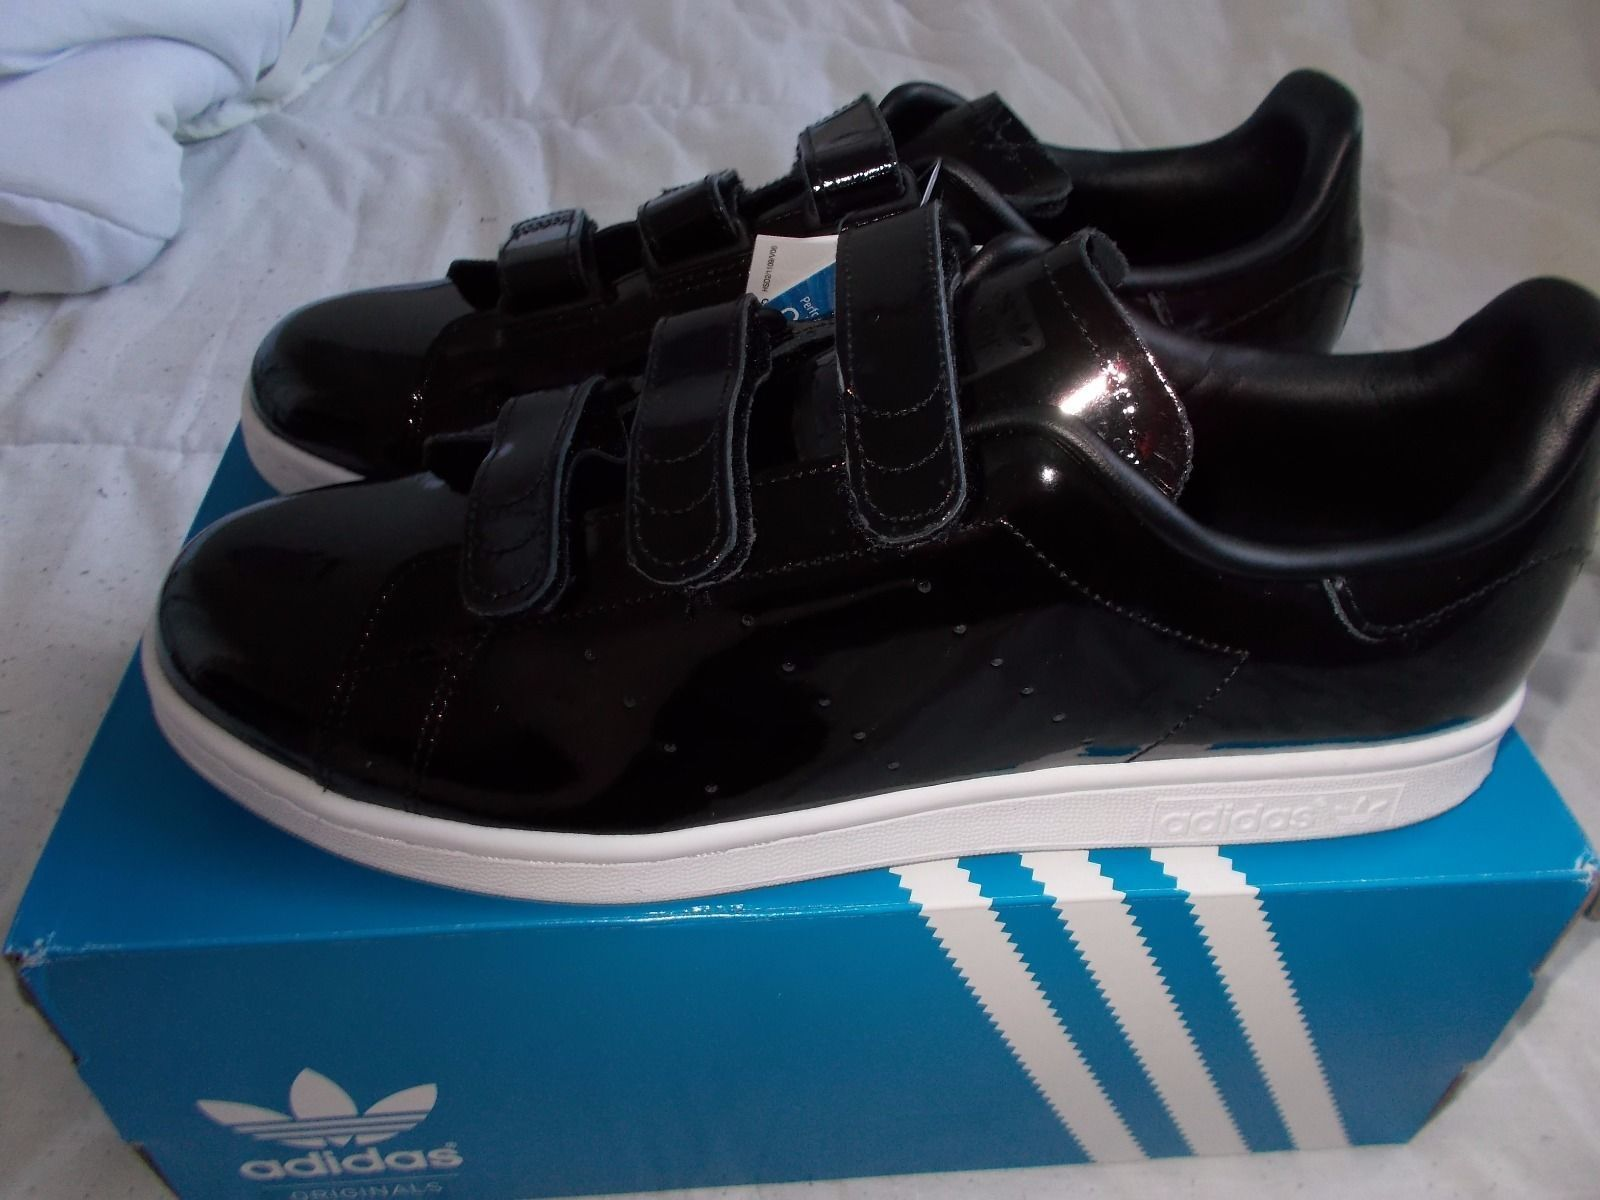 ADIDAS ORIGINALS Stan CF Negro Entrenadores, Talla Smith, 10uk 10.5us Nuevo + Caja + Etiquetas, s75190